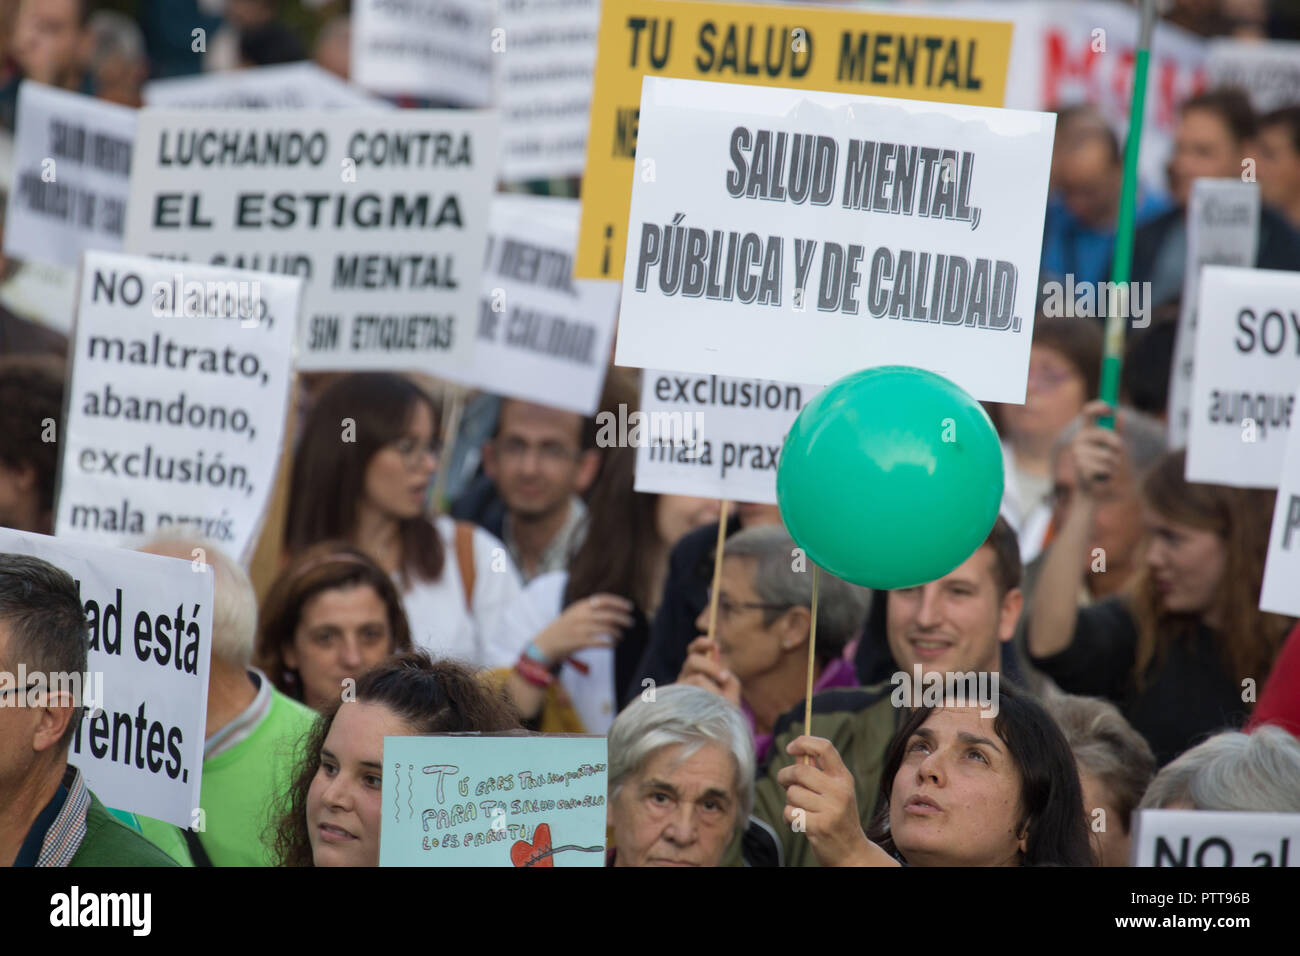 Madrid, Spain. 10th Oct, 2018. Protesters are seen holding posters during the protest.Hundreds of people have protested from Atocha to Puerta Del Sol against the labels that society puts on them on the International Mental Health Day where the Spanish public health system has demanded for an improvement in the matters of Mental Health, the public health system has also criticized the budget cuts in the Mental Health. Credit: Lito Lizana/SOPA Images/ZUMA Wire/Alamy Live News - Stock Image